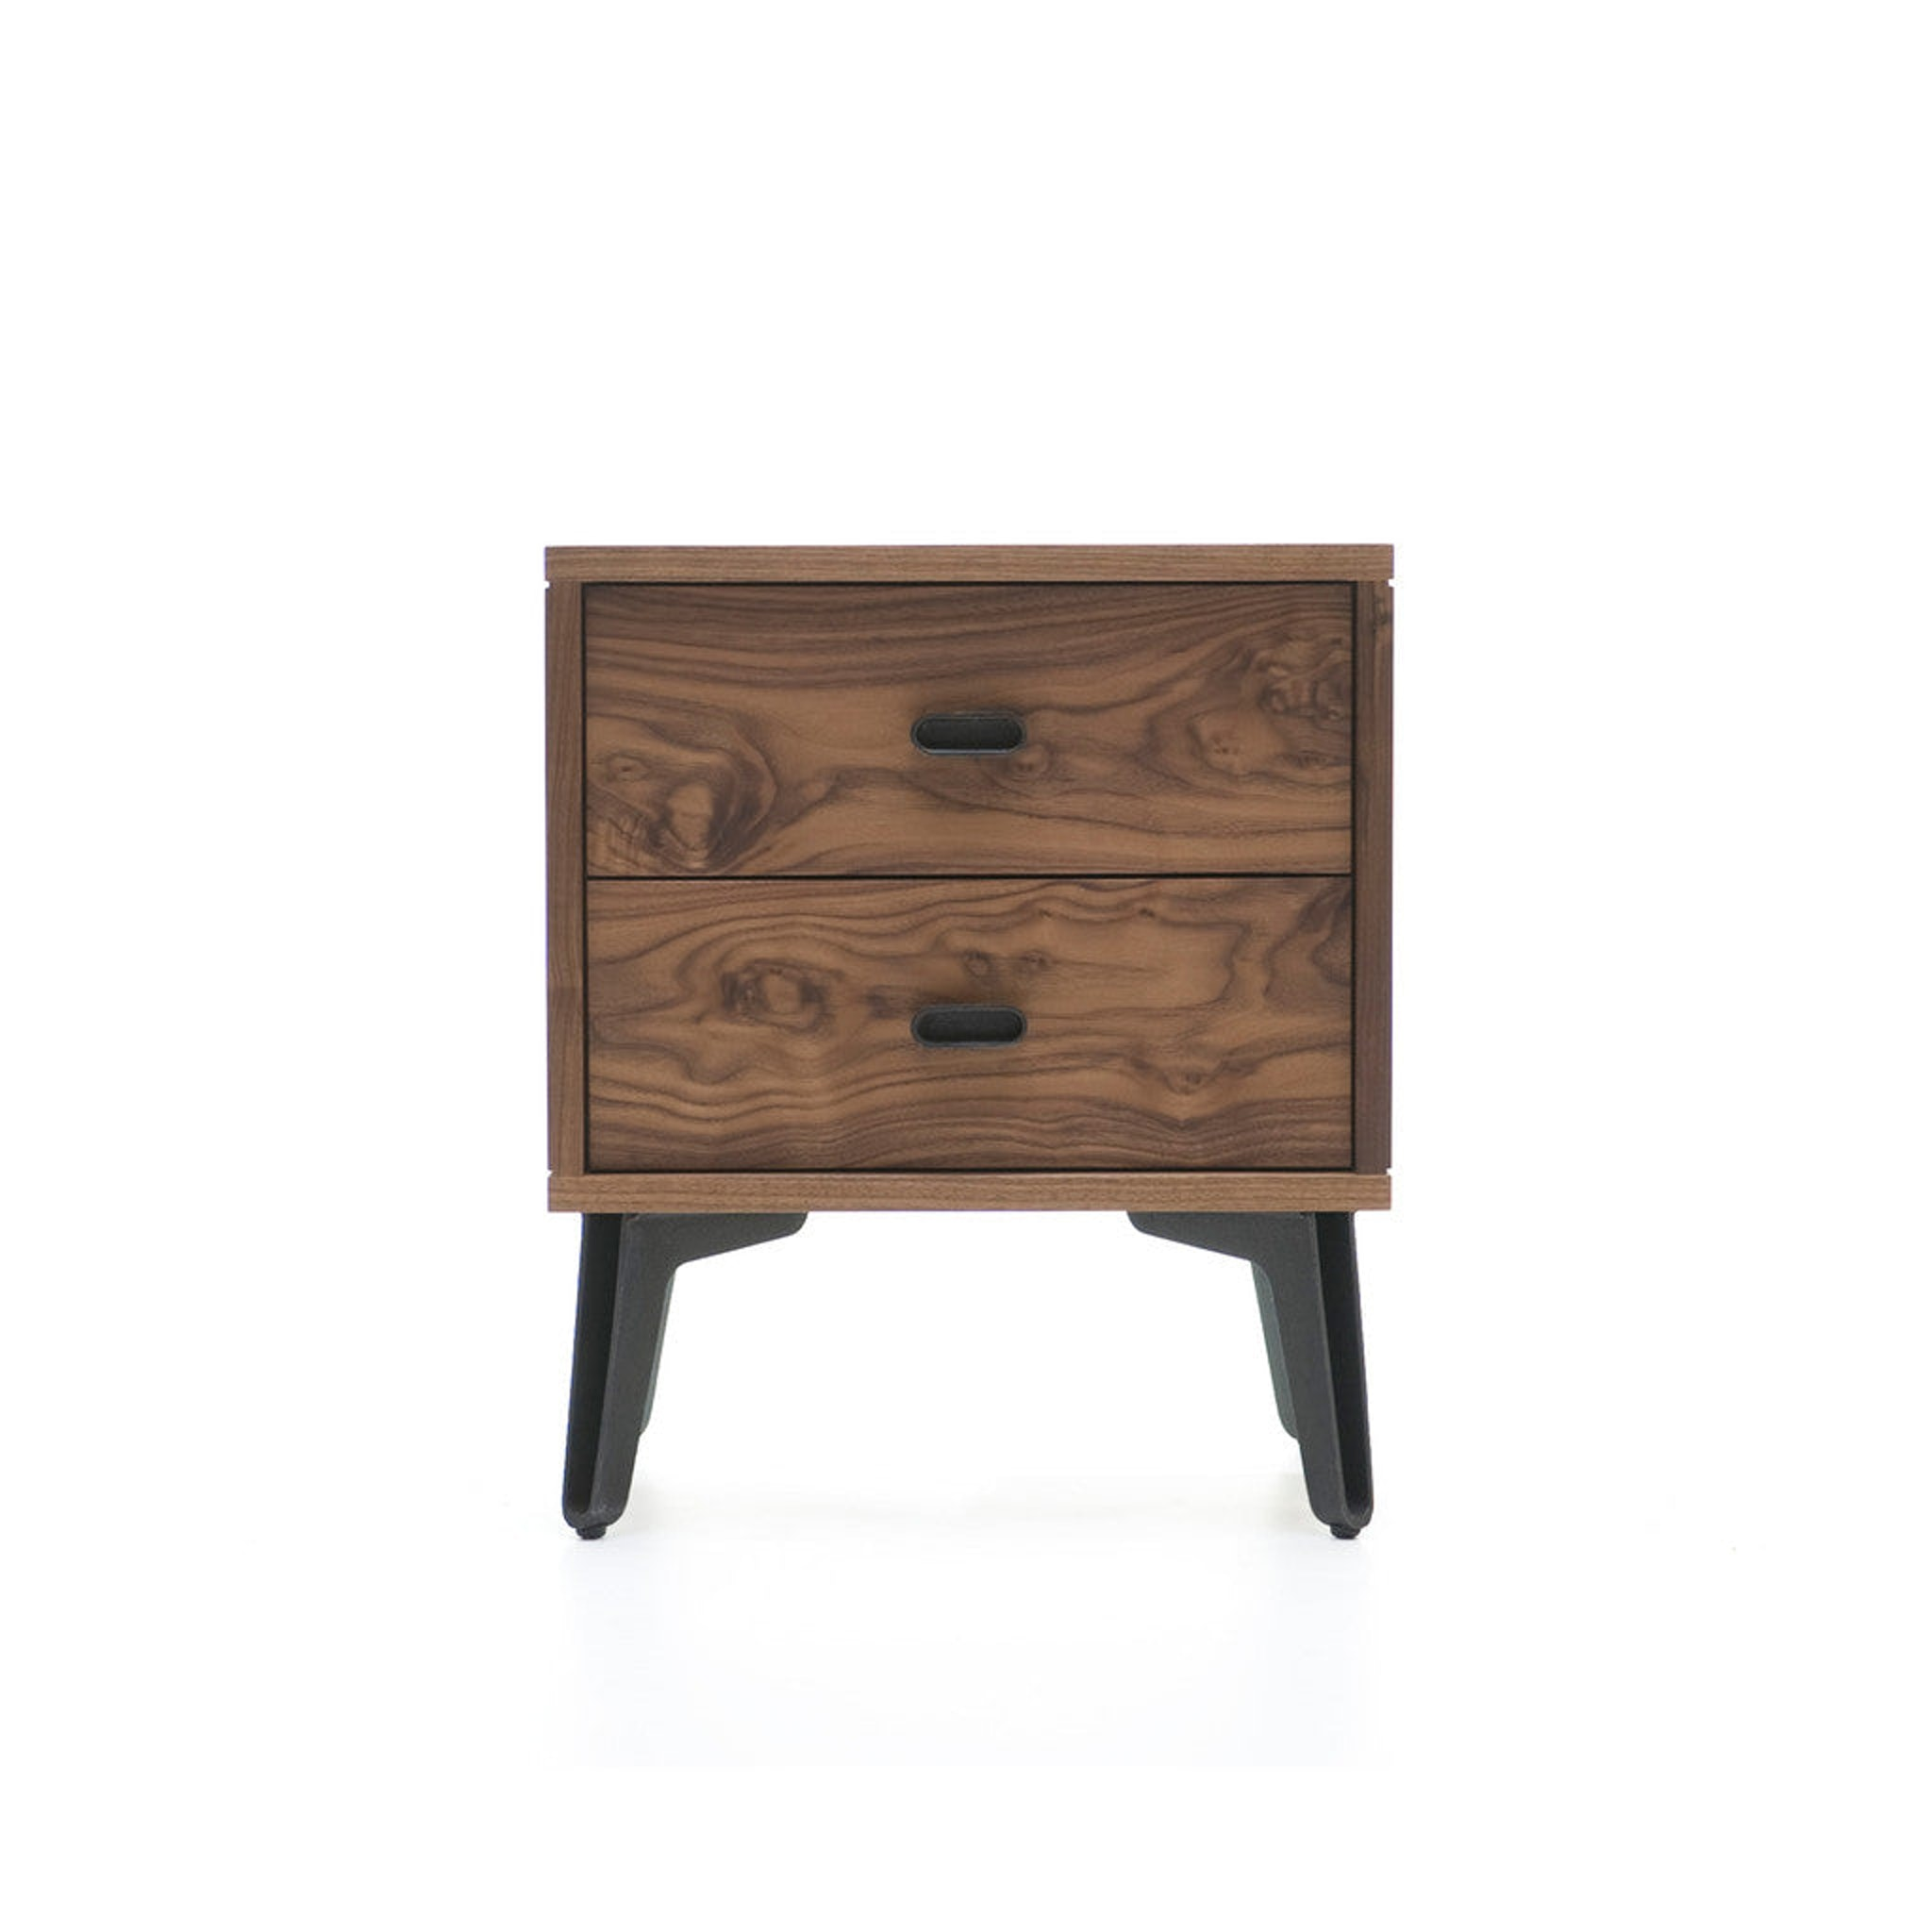 McQueen Bedside Chest by Matthew Hilton